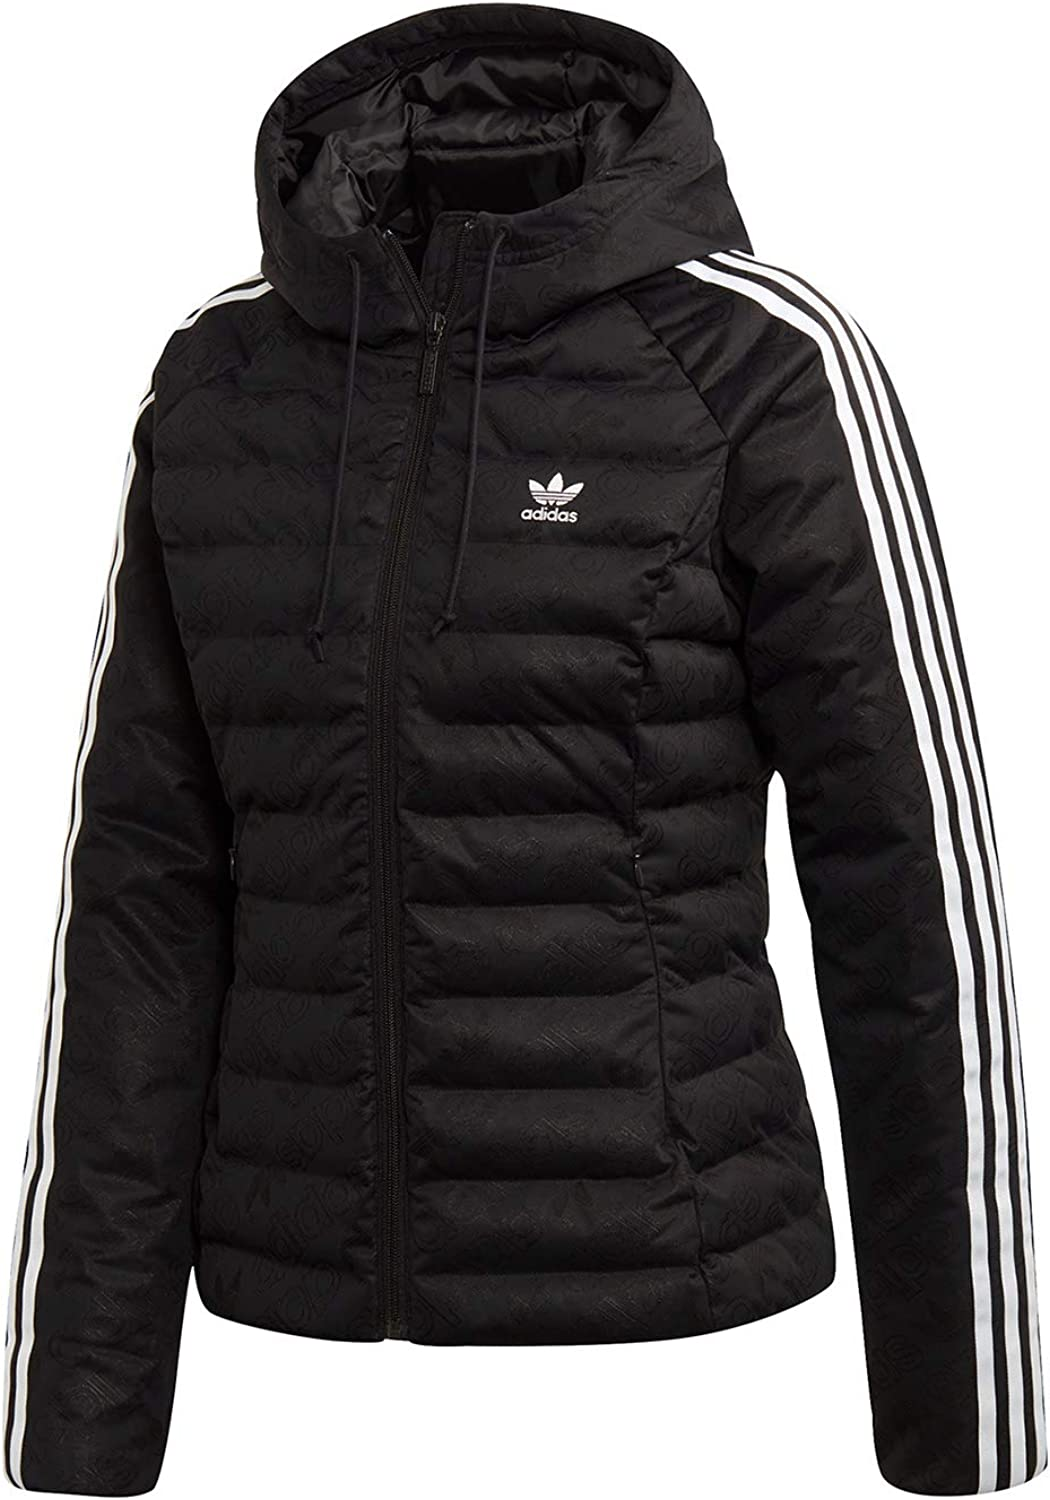 adidas Originals Jacke Damen Slim Jacket ED4739 Rosa: Amazon